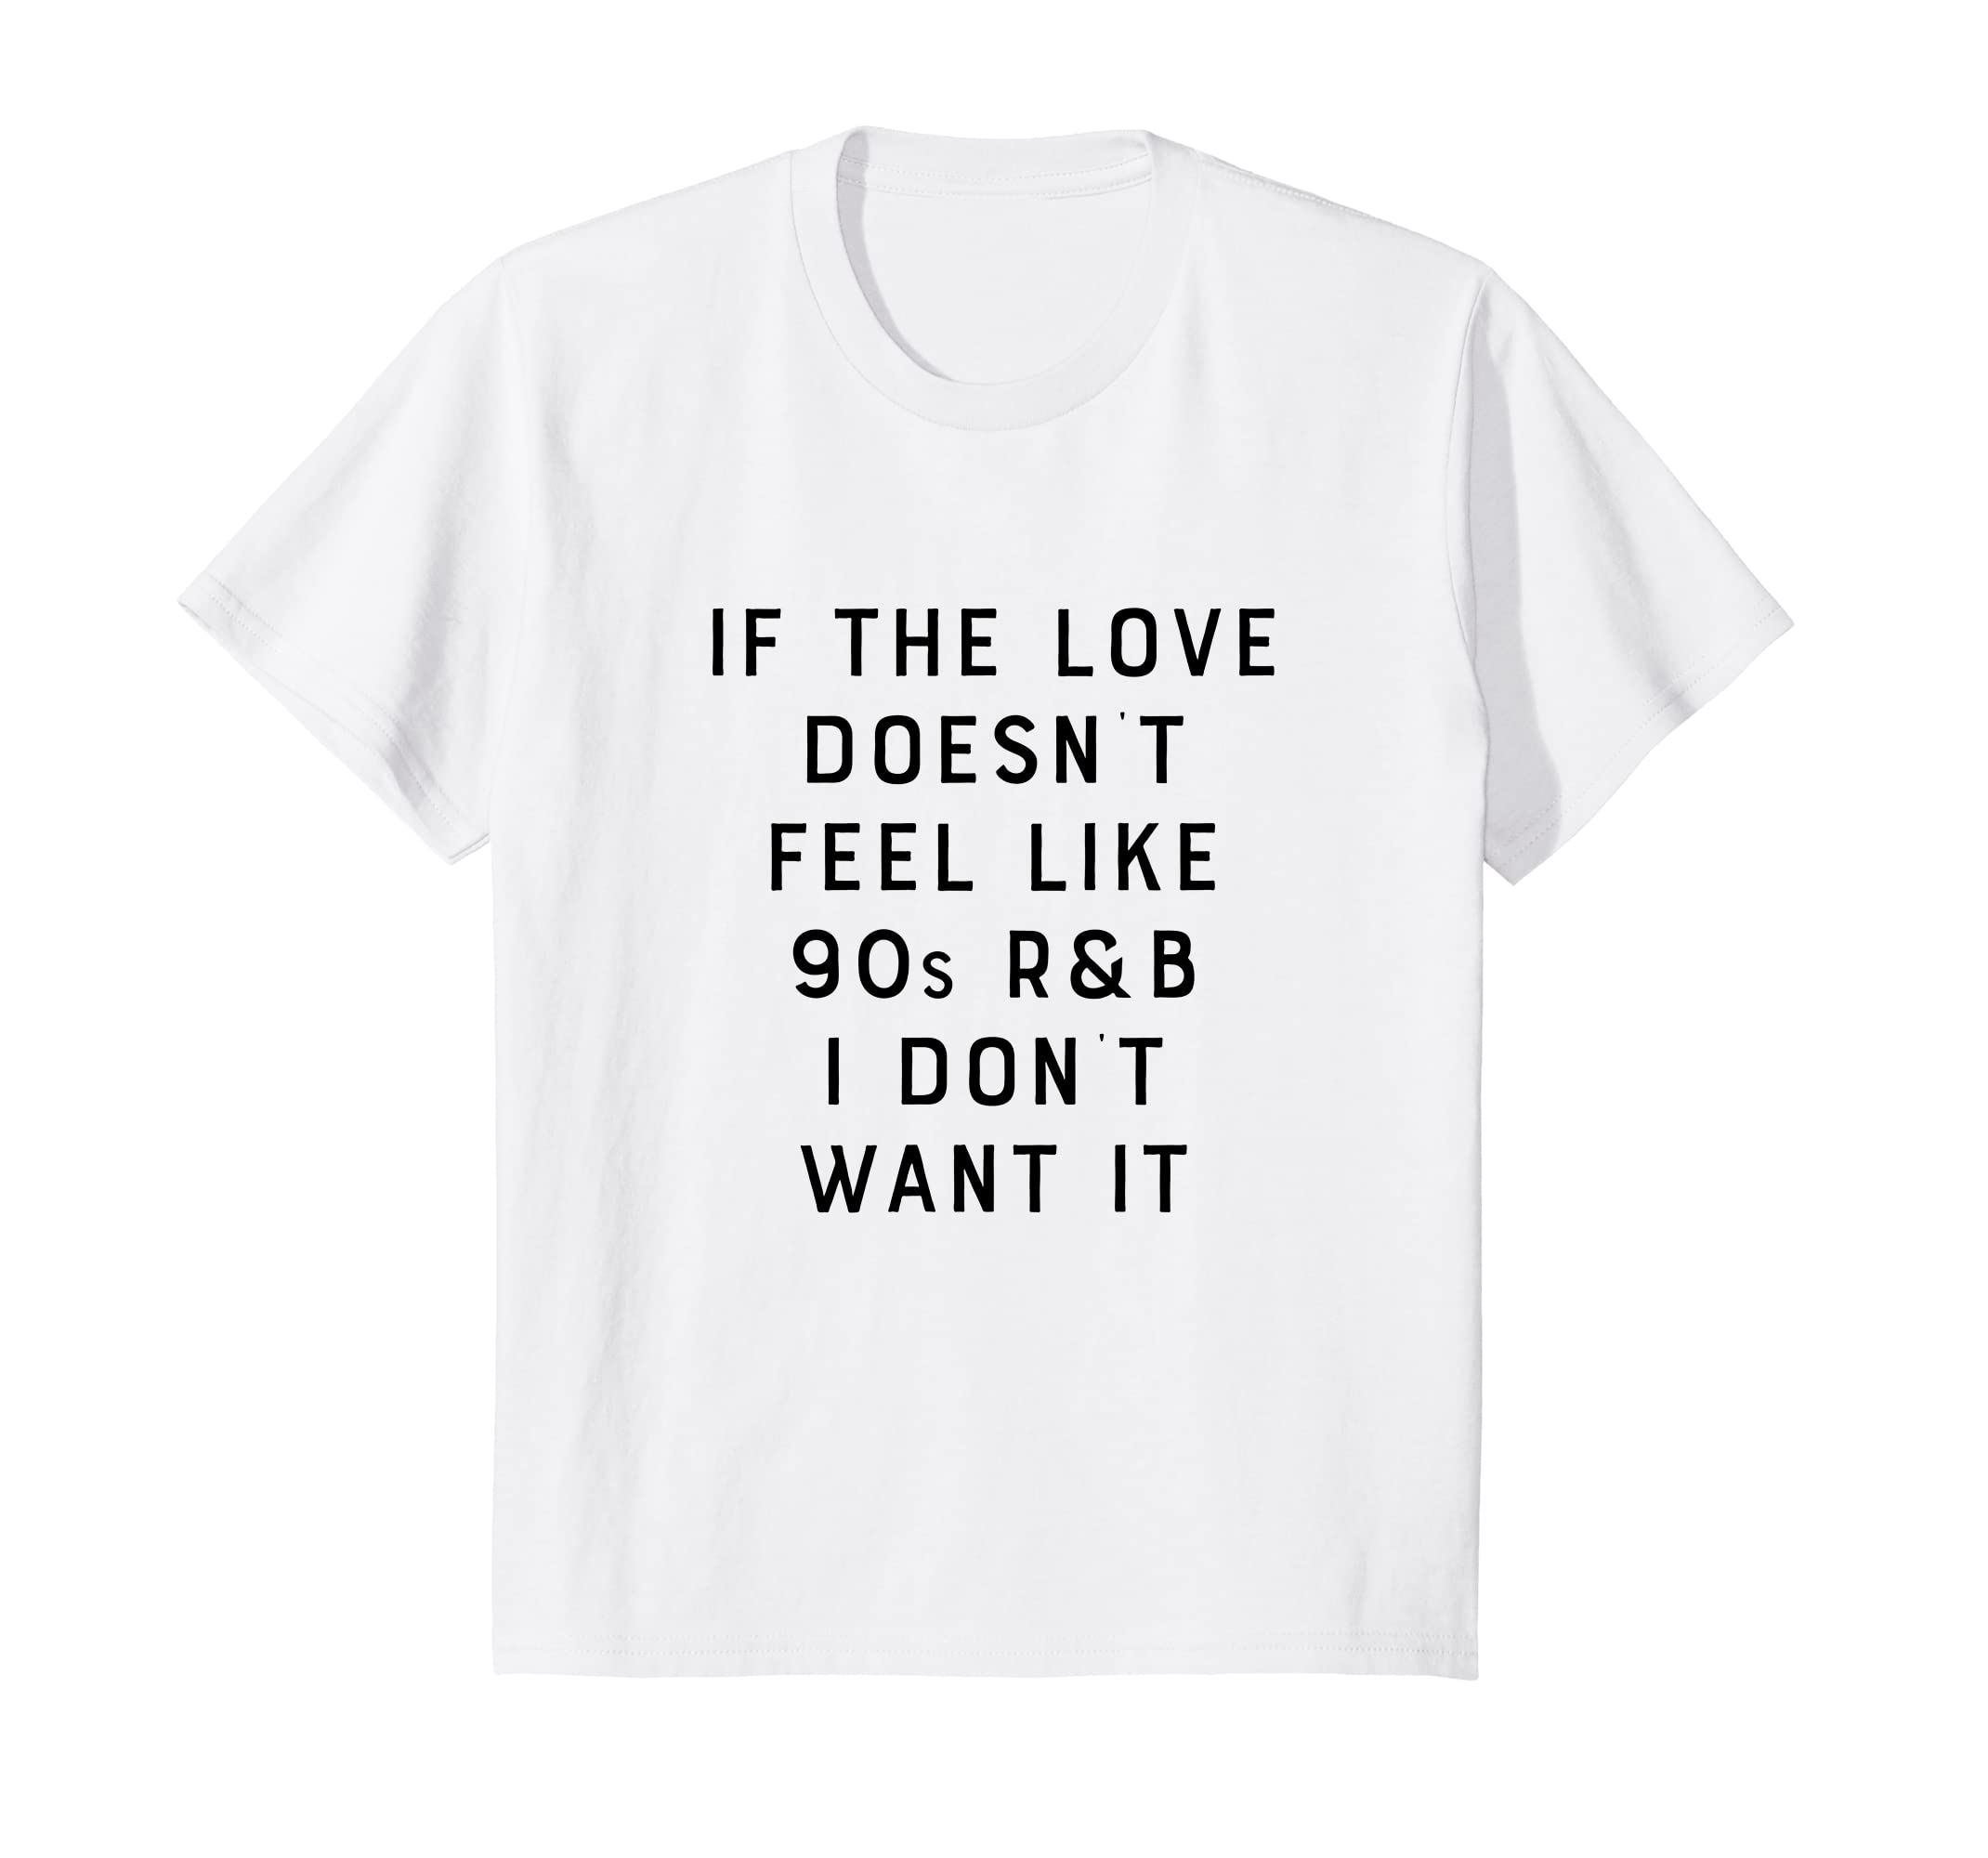 306c39036c1be Amazon.com  If The Love Doesn t Feel Like 90s R B I Don t Want It Shirt   Clothing